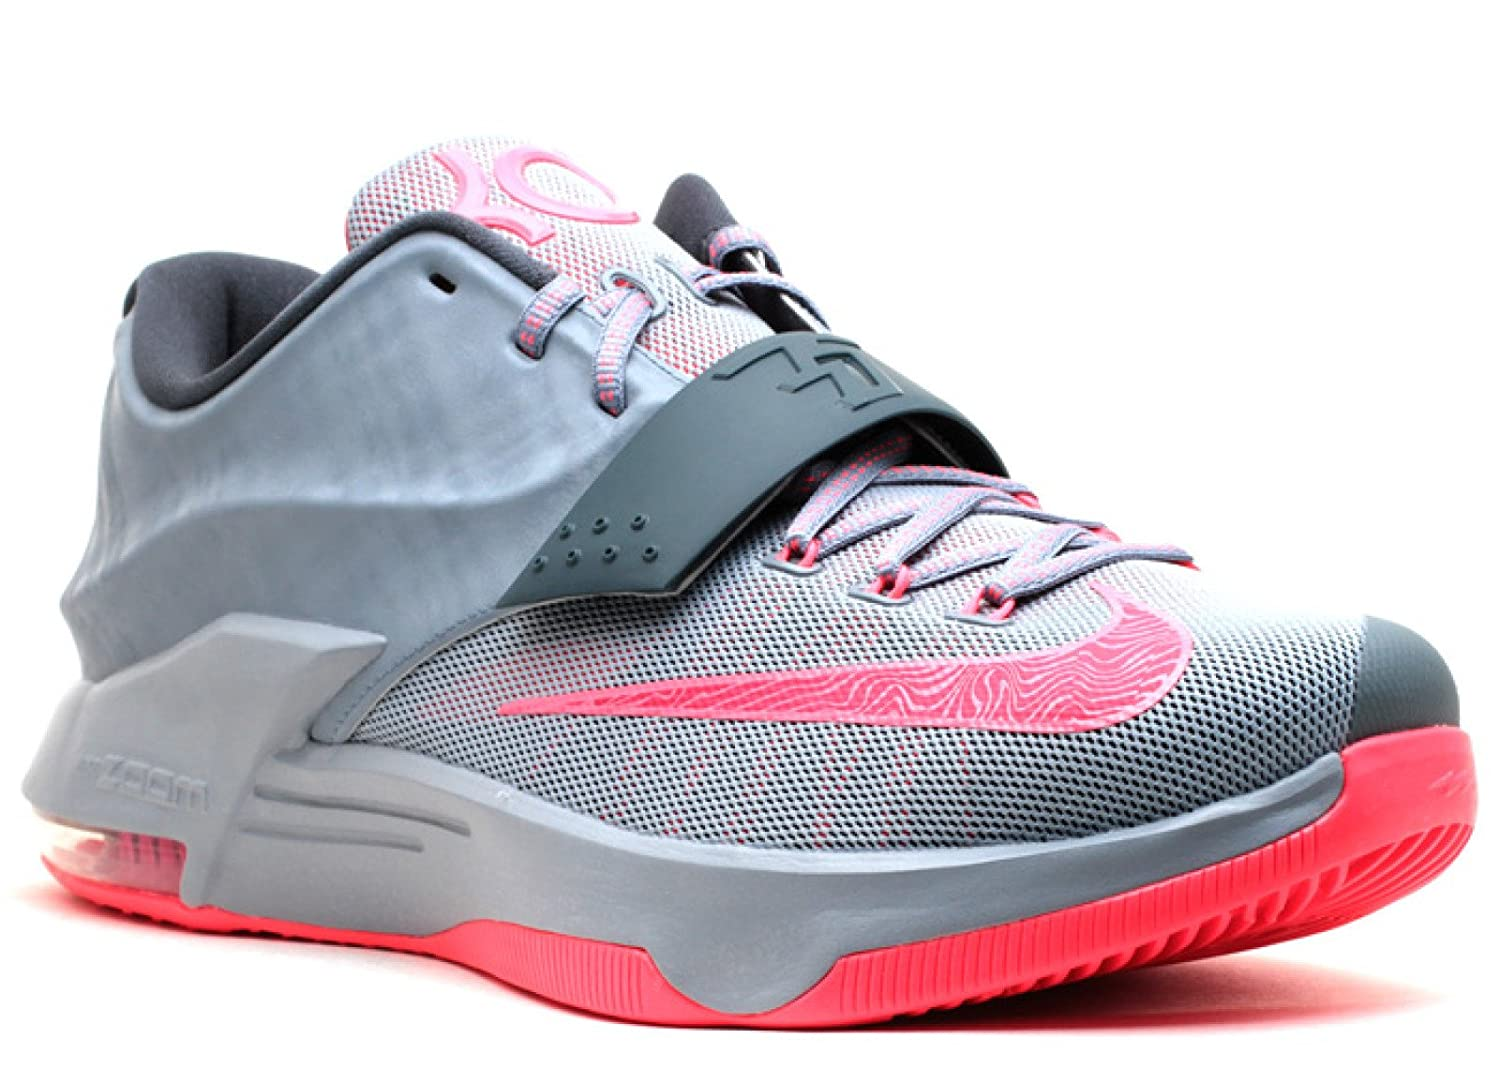 pretty nice 1445f 68e6a KD 7  Calm Before The Storm  - 653996-060 - Size 12-UK  Amazon.co.uk  Shoes    Bags